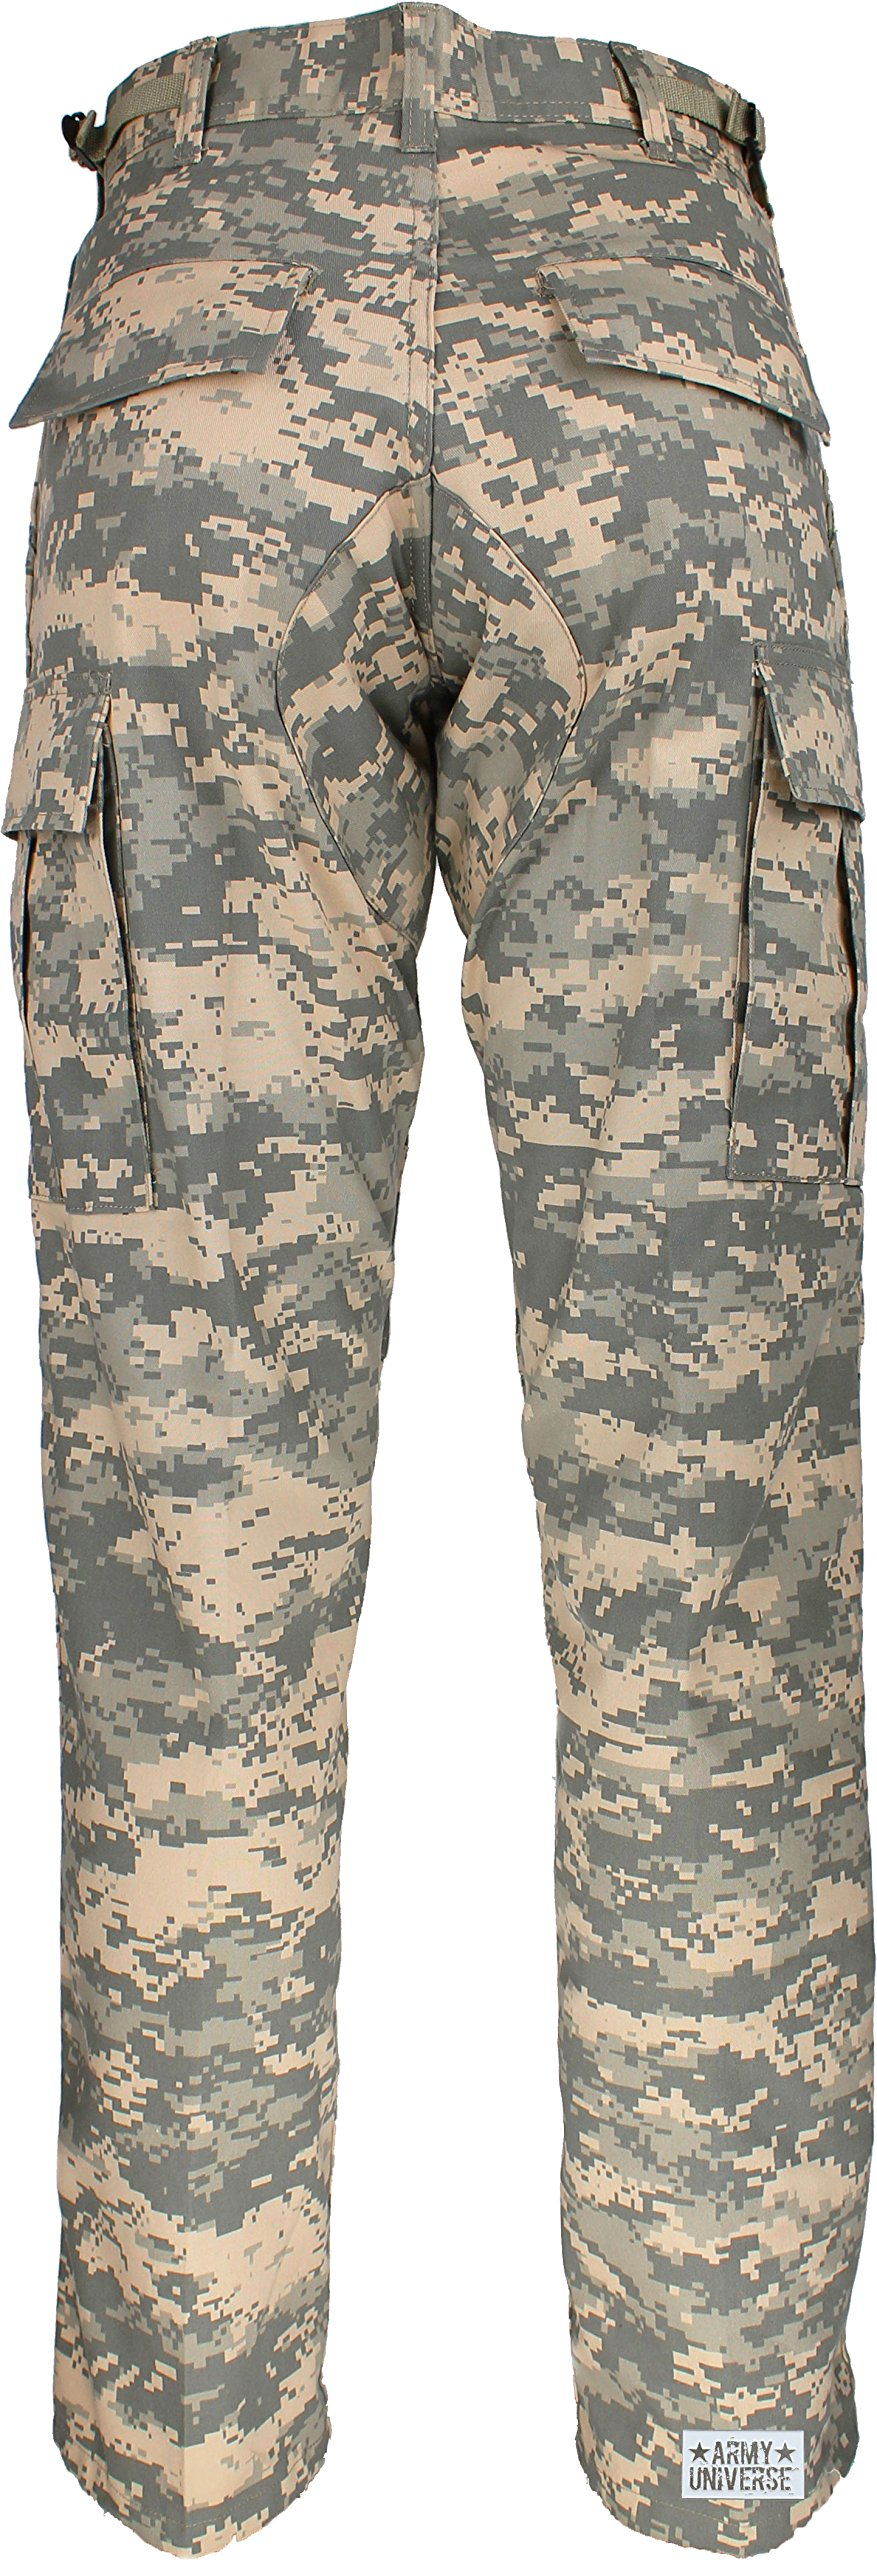 Mens Woodland Digital Camo Poly Cotton Military BDU Army Fatigues Cargo  Pants with Official ArmyUniverse Pin a0f4109c4d2